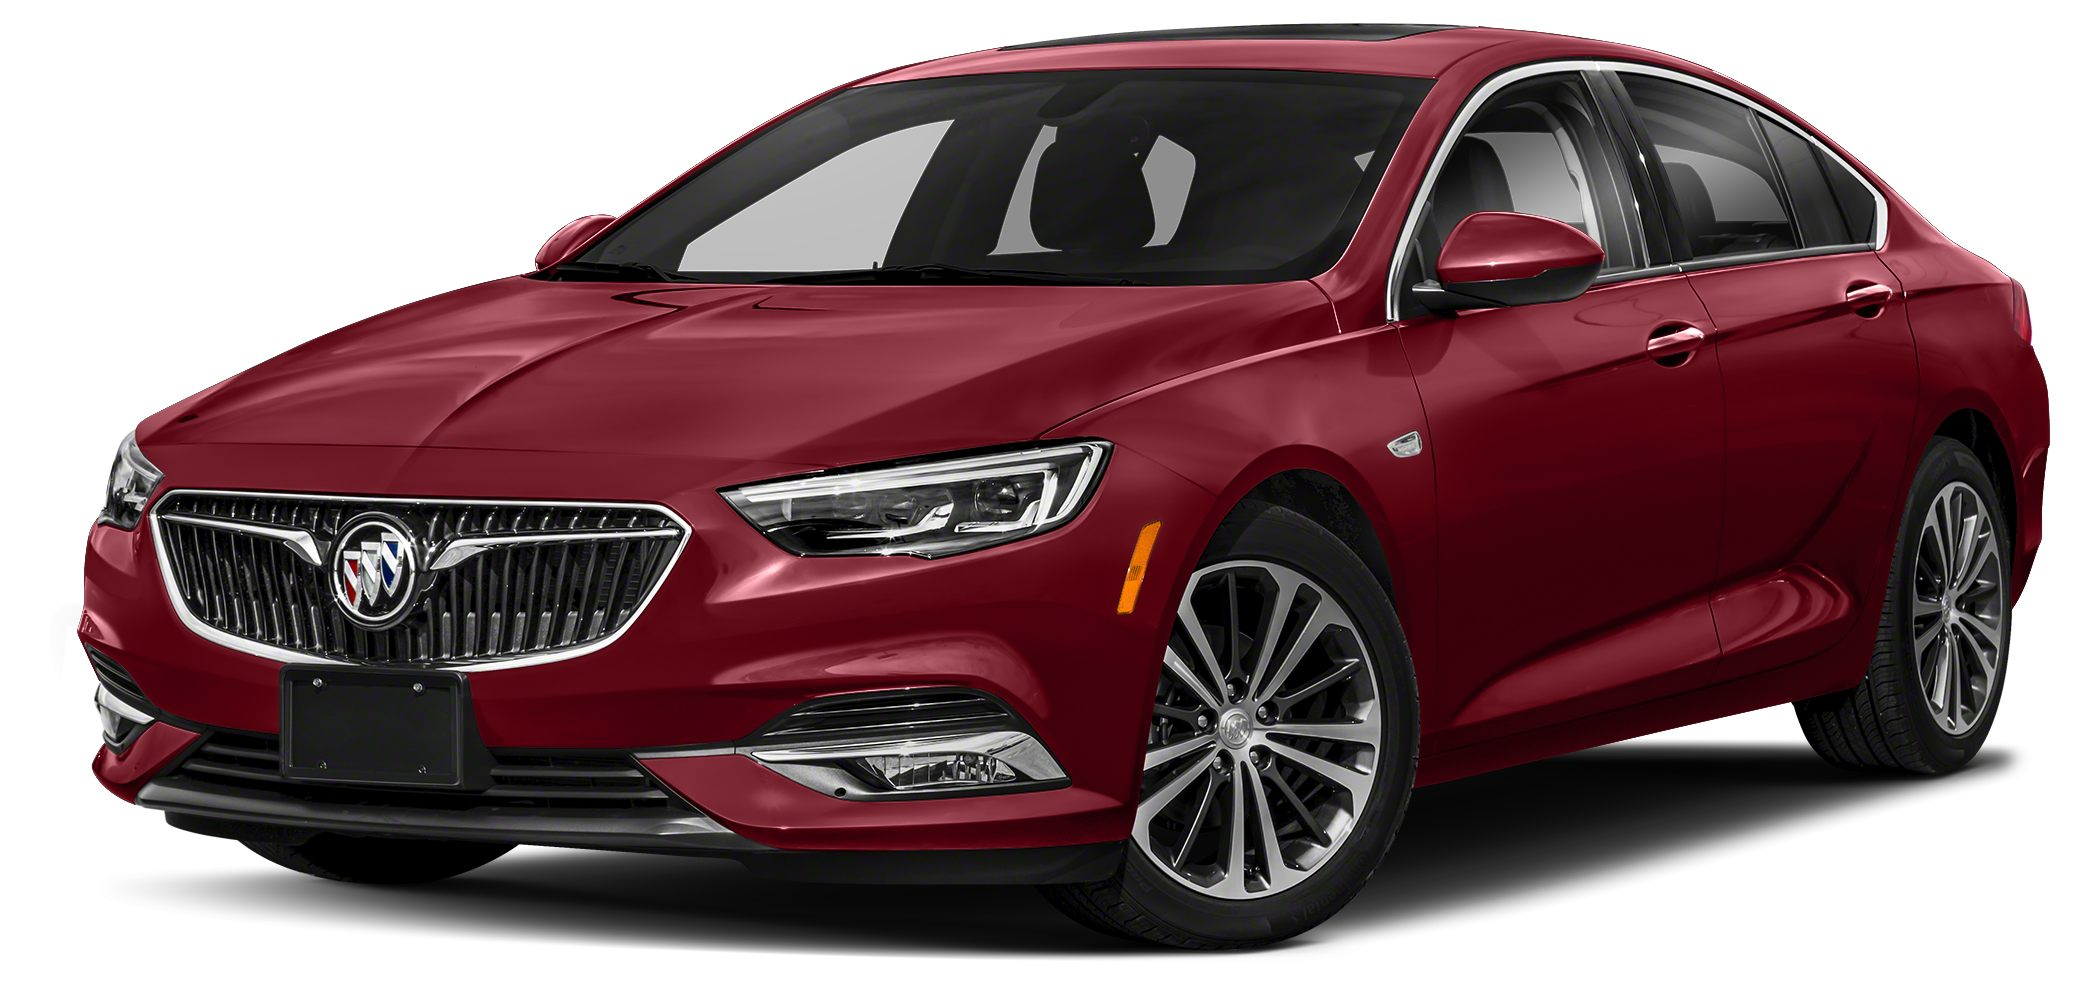 2018 Buick Regal Sportback Essence When youre ready for an automotive upgrade try this 2018 Buic